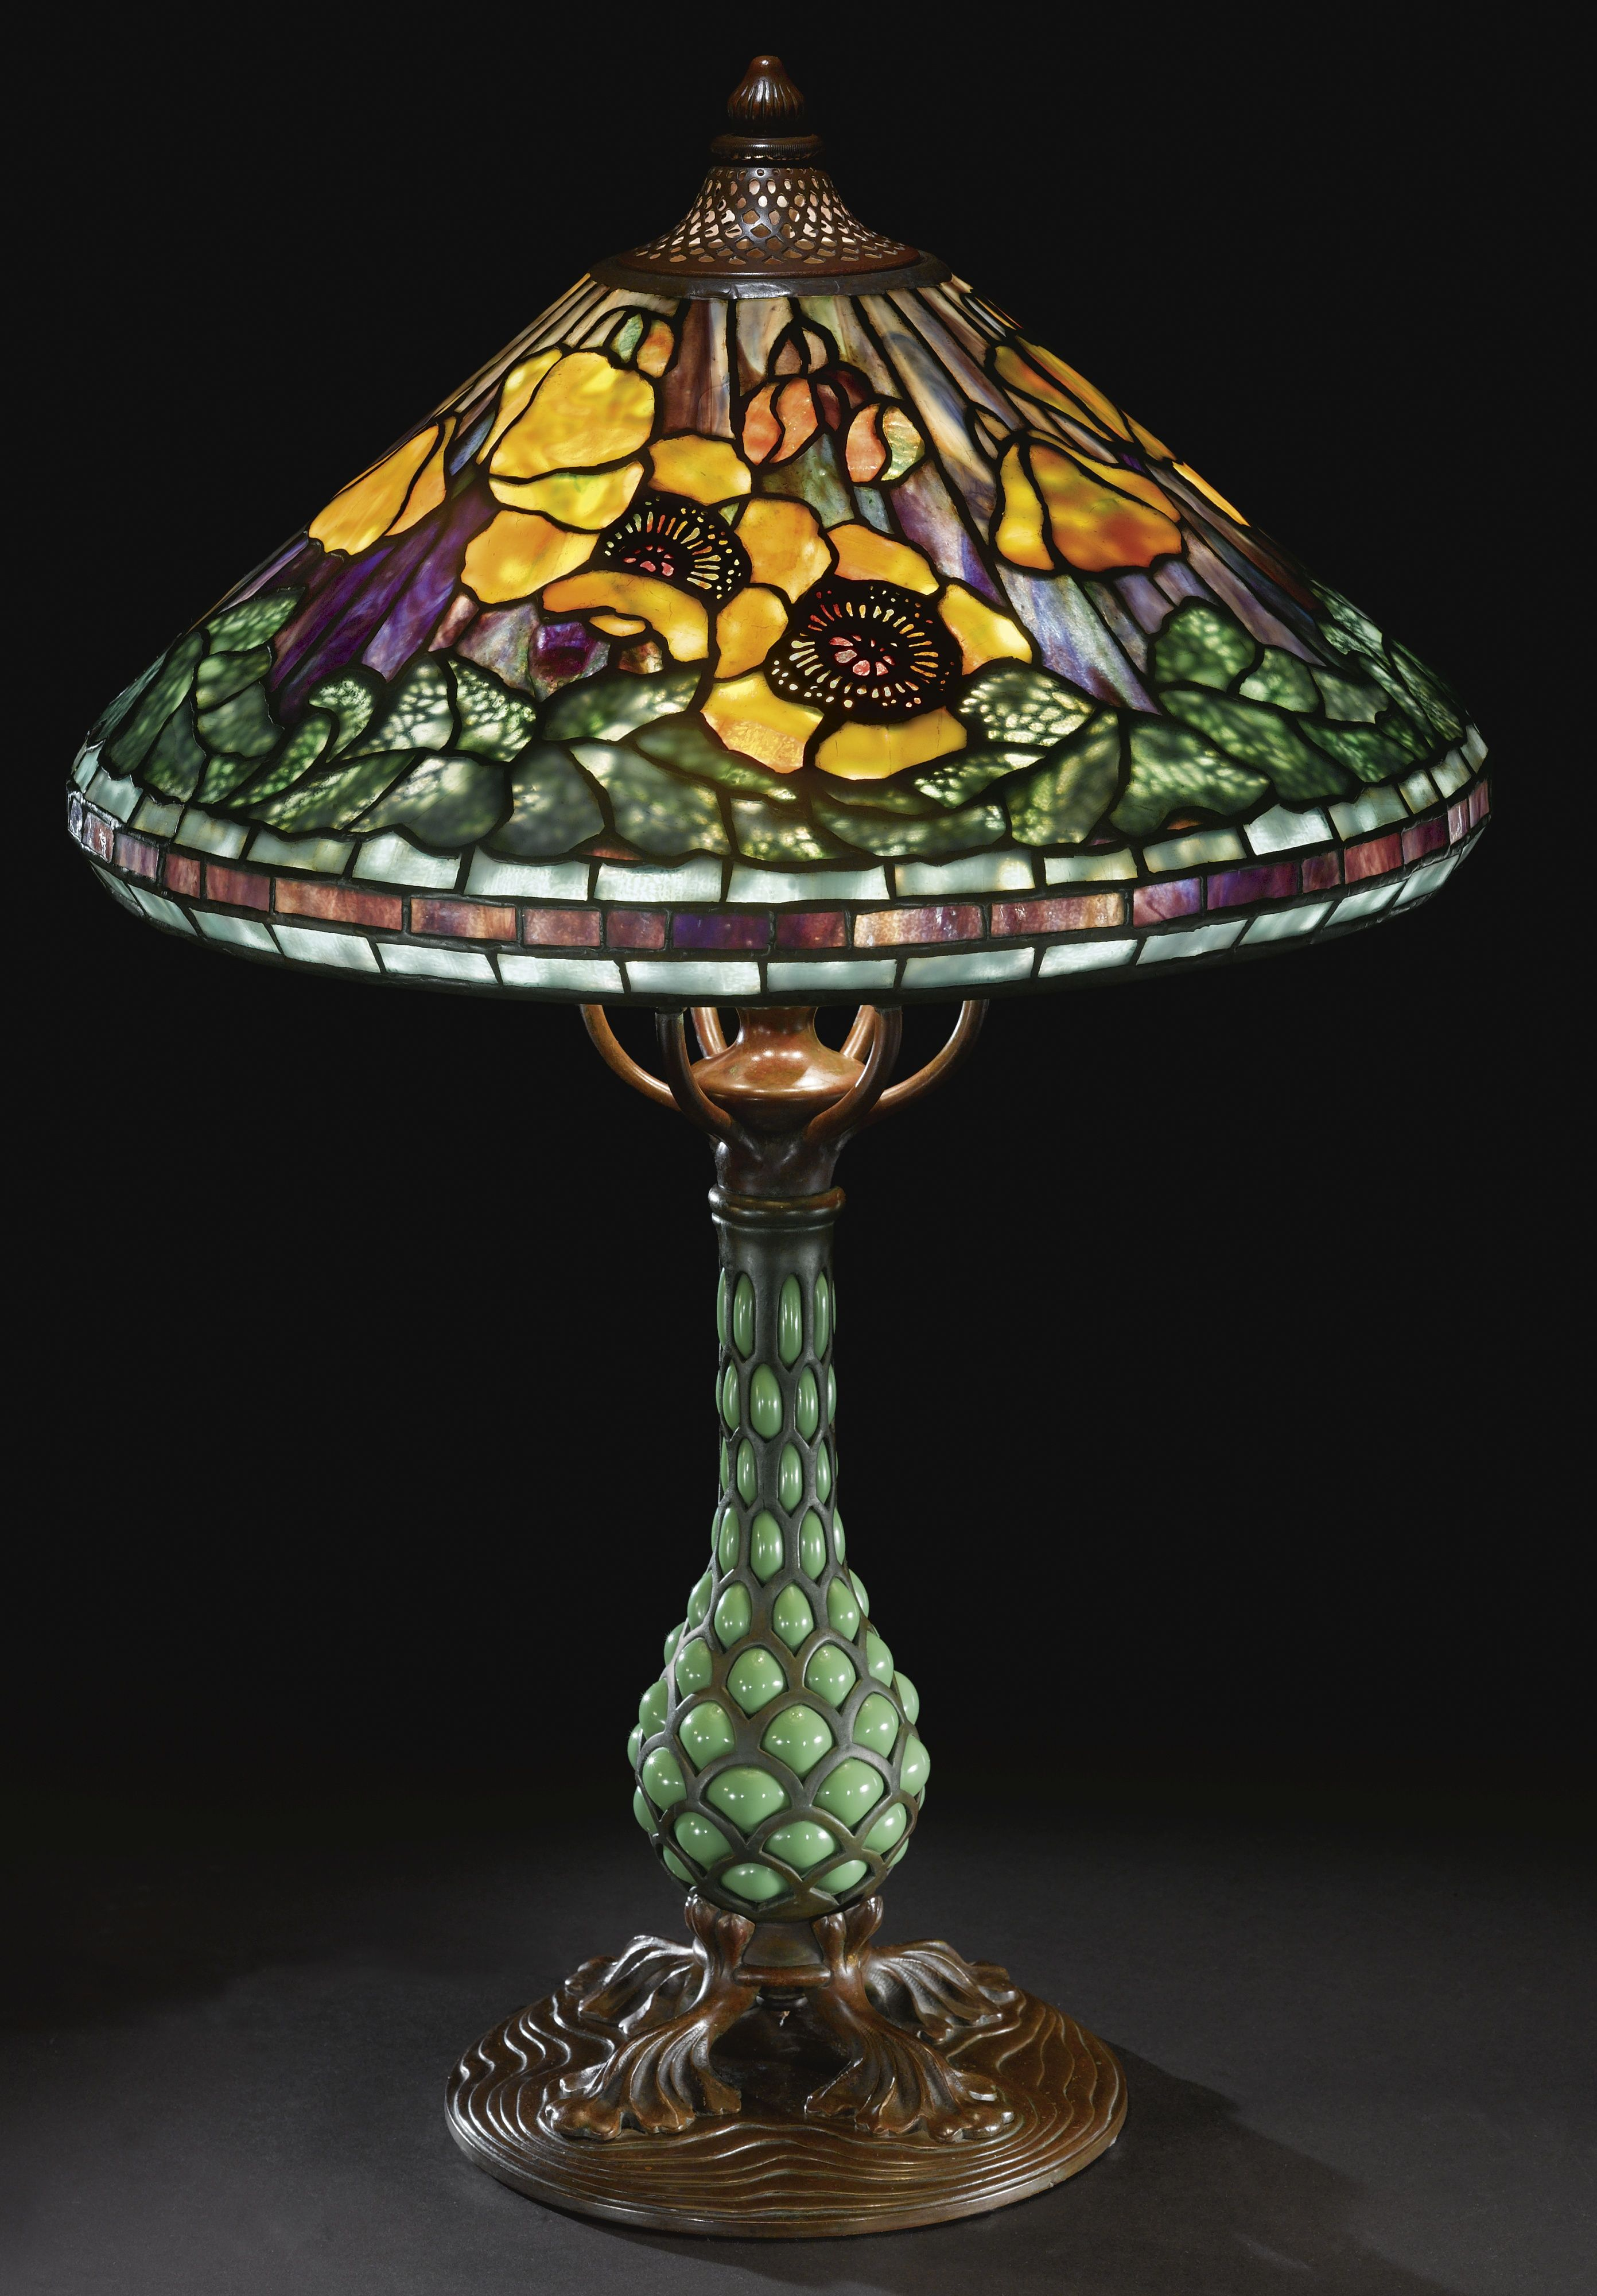 Pin by ~~~~~Casati~~~~~ on Tiffany, Leaded Lamps  Pinterest